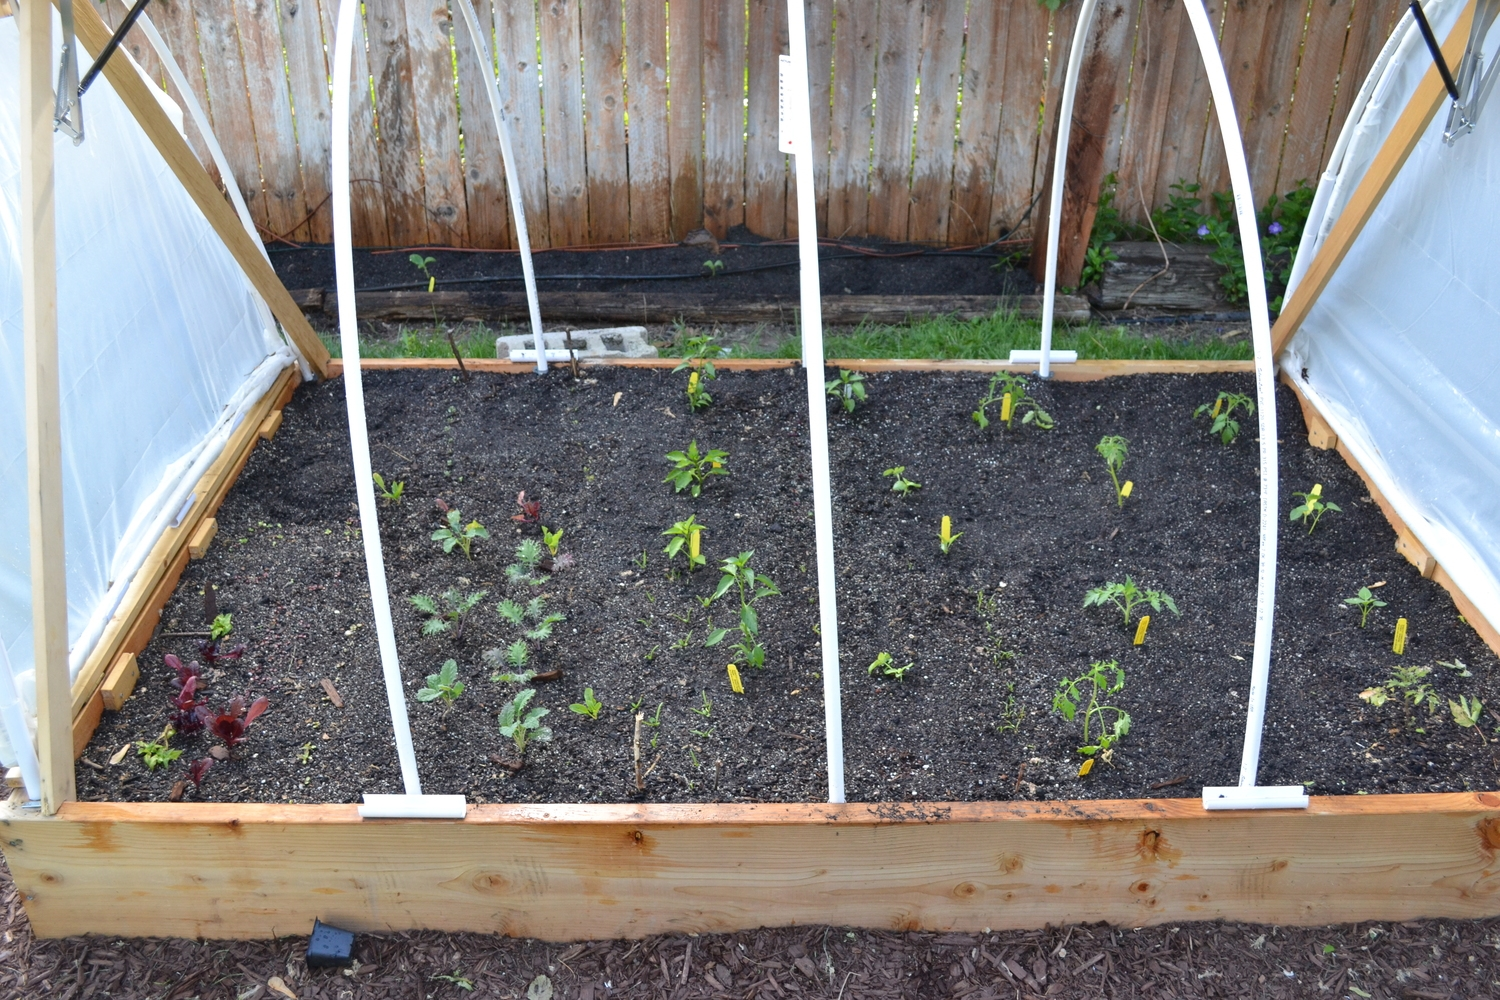 Here are the new babies in their new home.  Tomato, tomatillo, various peppers , and eggplant on the right half of the raised bed.